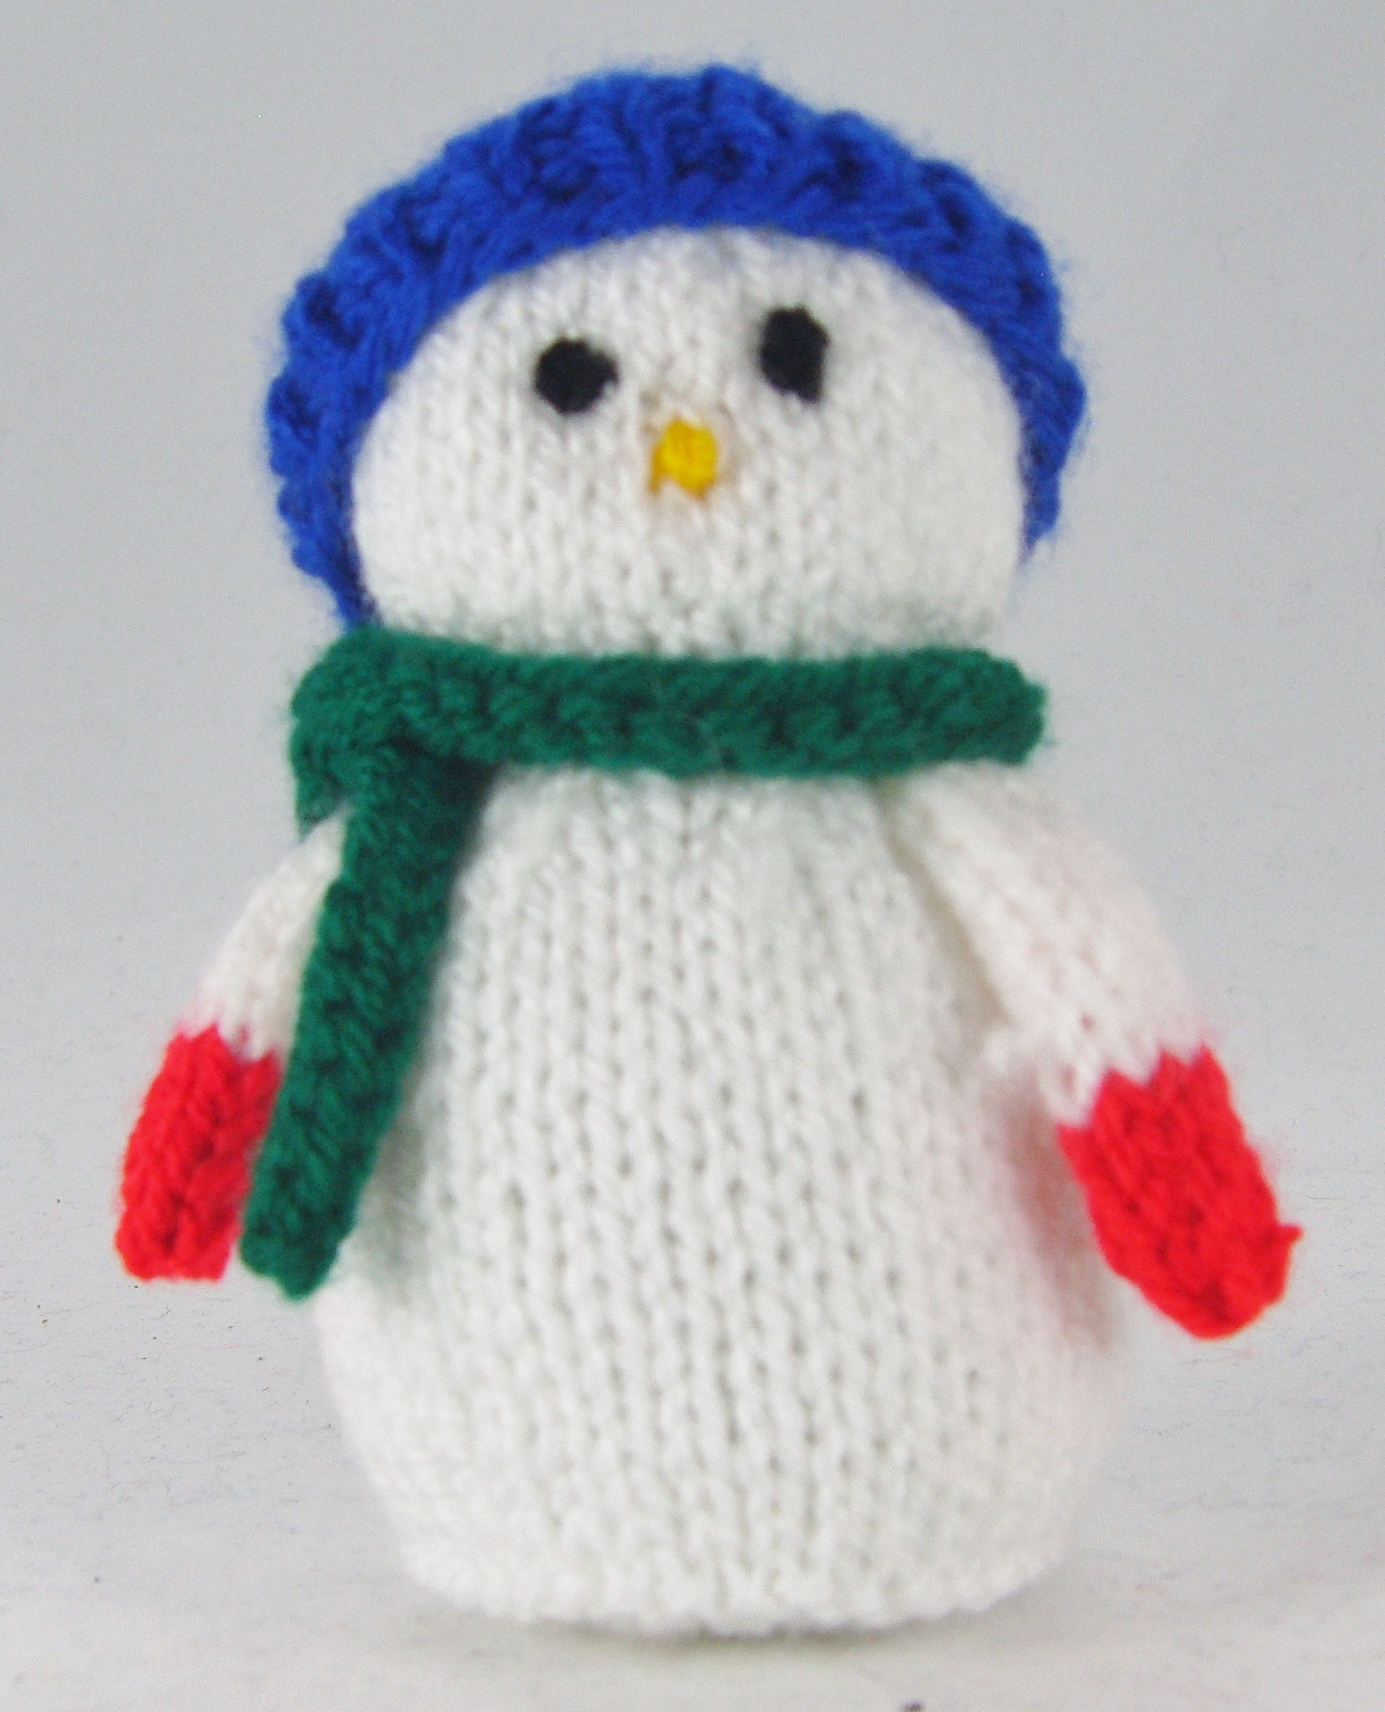 Mini Knitted Christmas Characters Knitting Pattern • Knitting by Post